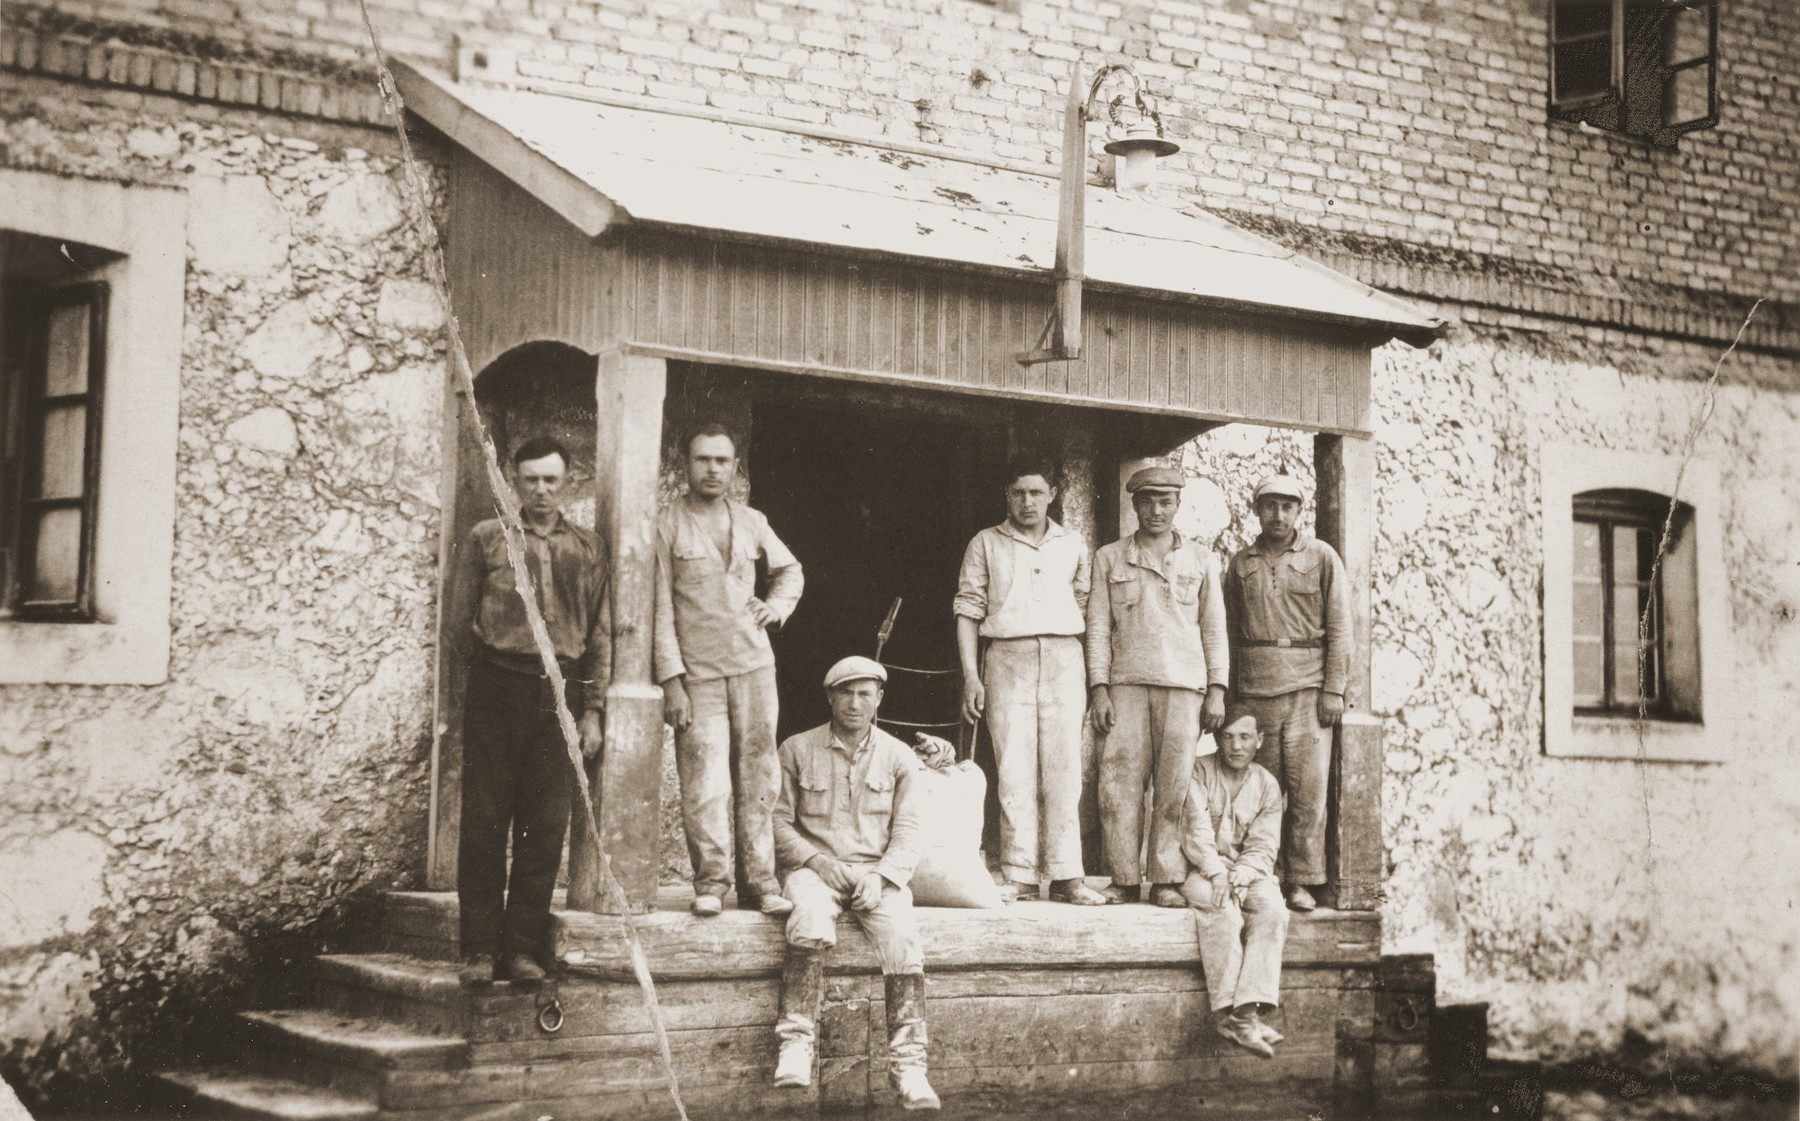 Jewish workers pose on the porch of a mill in Lyubcha.